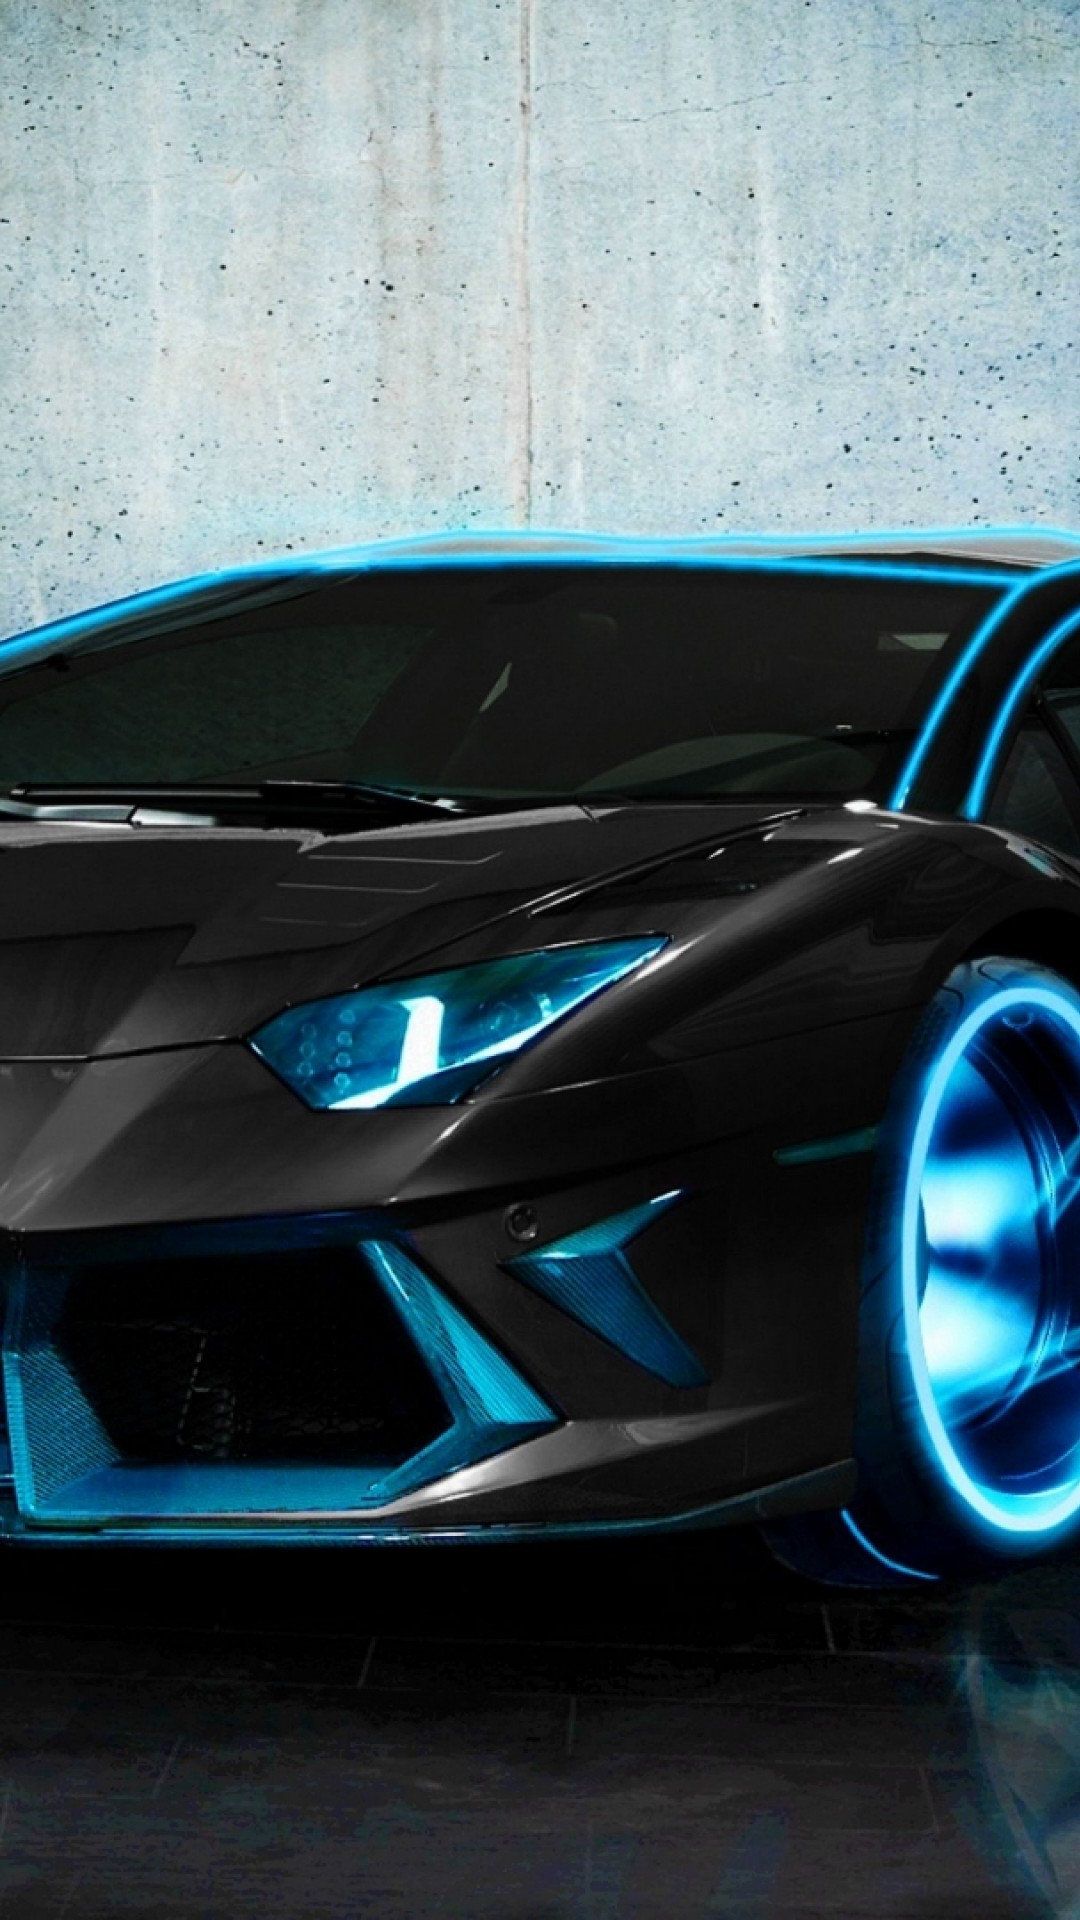 Cool Neon Lamborghini : lamborghini, Lamborghini, Wallpapers, Backgrounds, WallpaperAccess